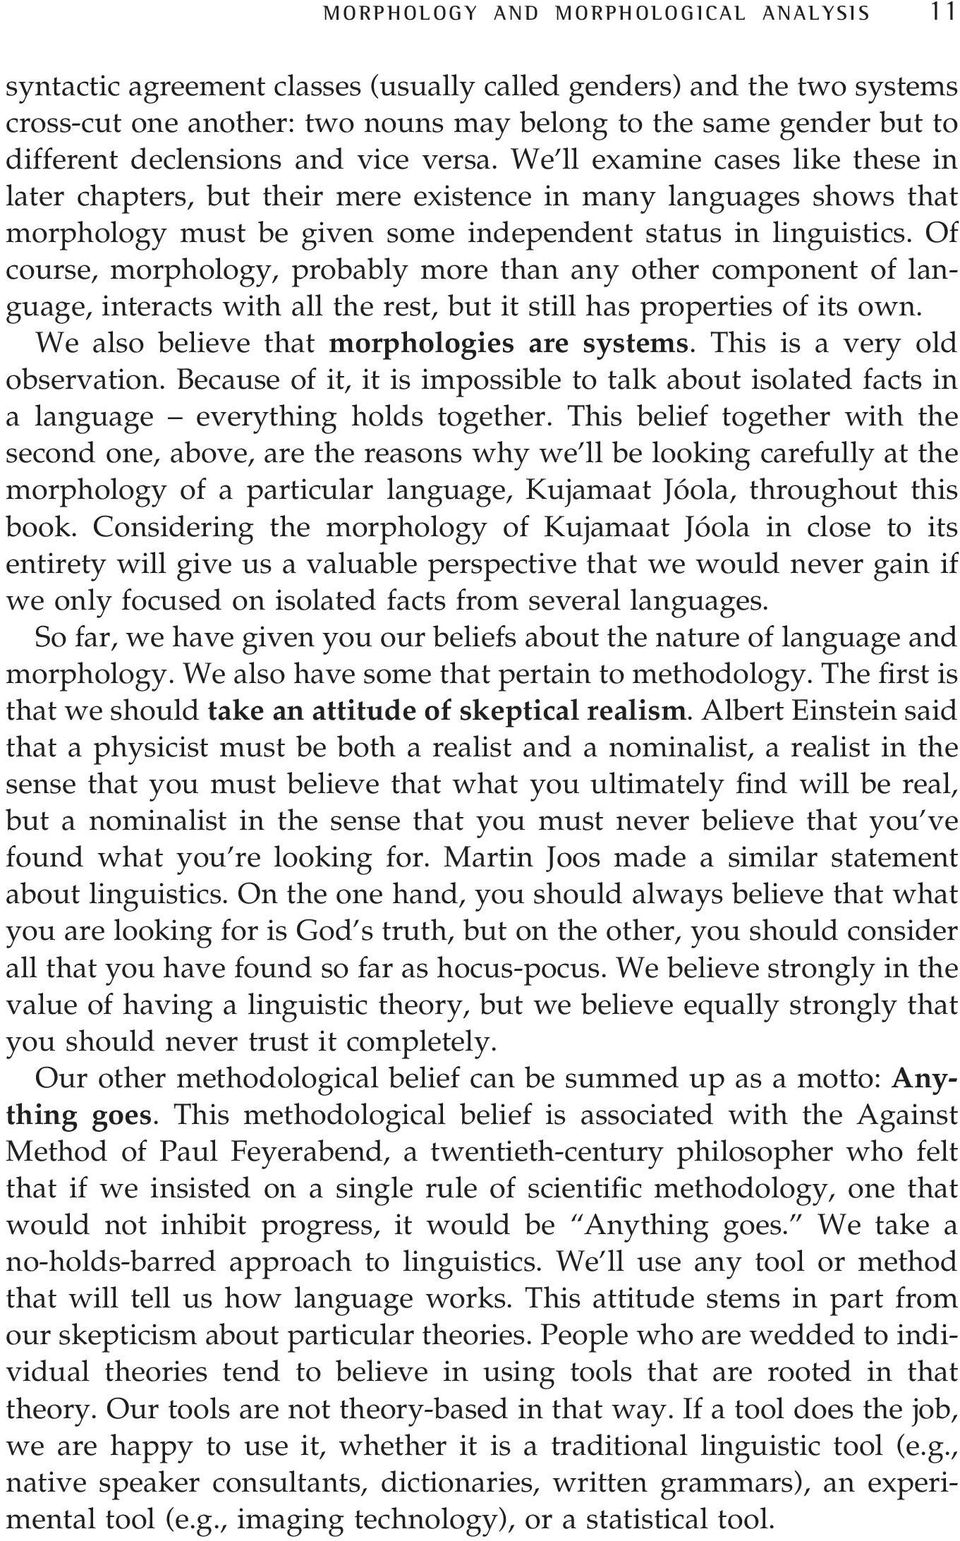 Of course, morphology, probably more than any other component of language, interacts with all the rest, but it still has properties of its own. We also believe that morphologies are systems.